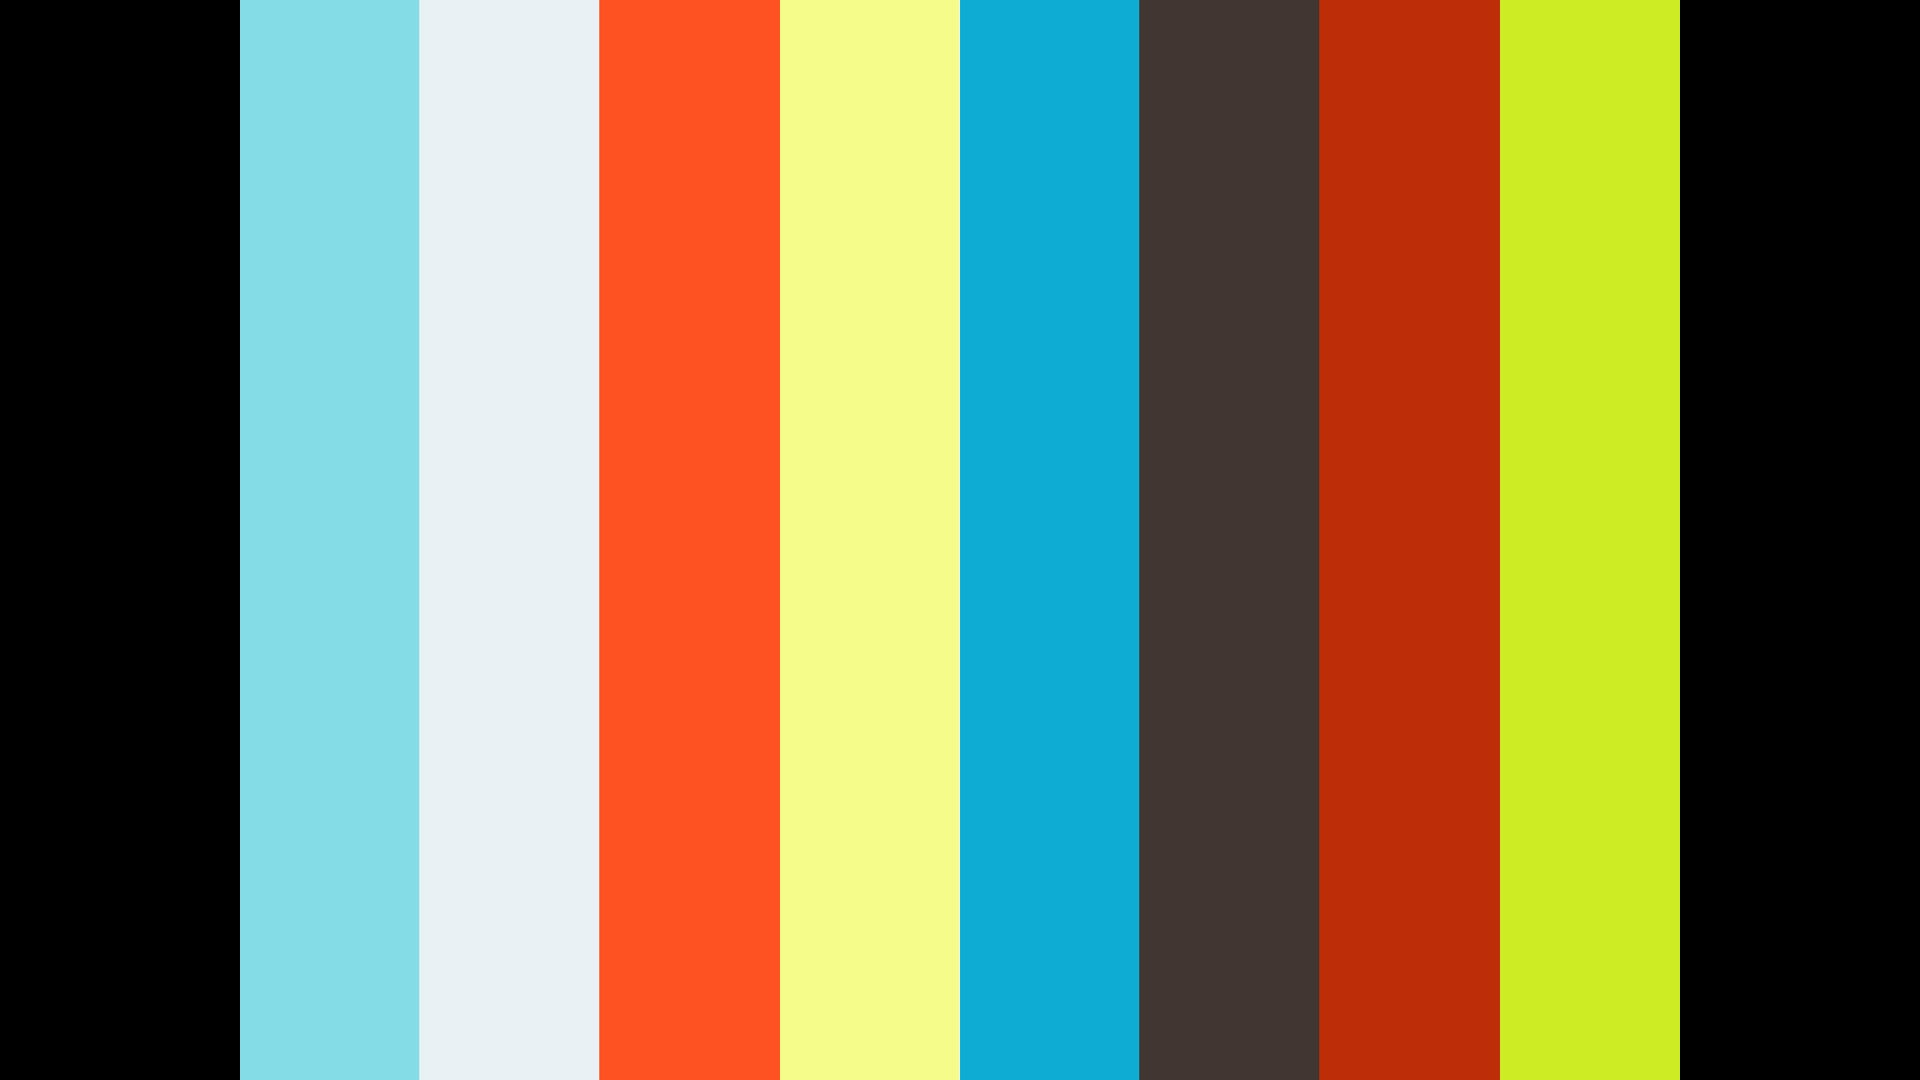 AIKI Informatique at ChannelNext East 2019